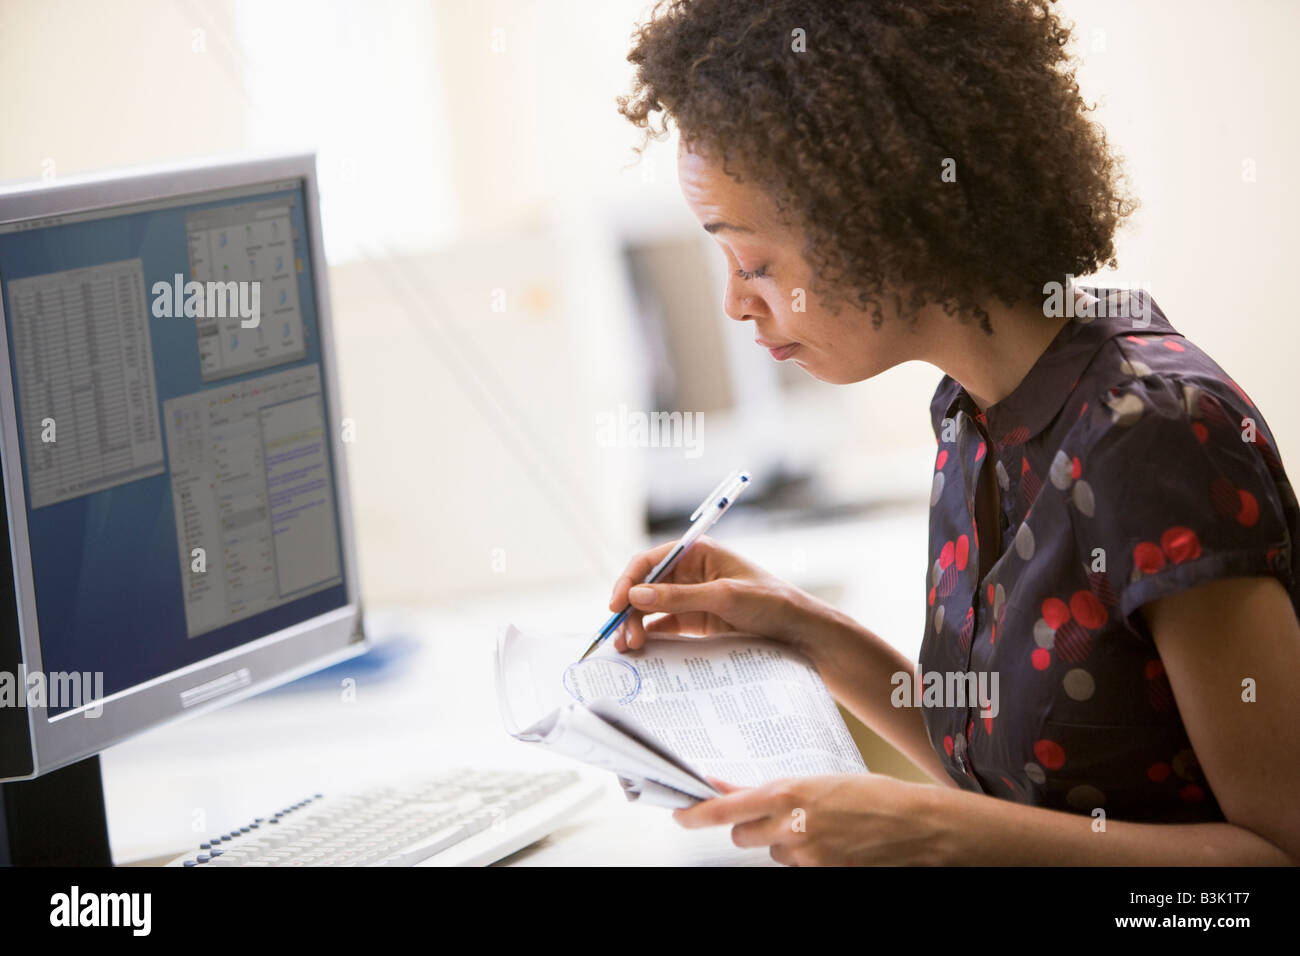 Woman in computer roon circling items in newspaper - Stock Image